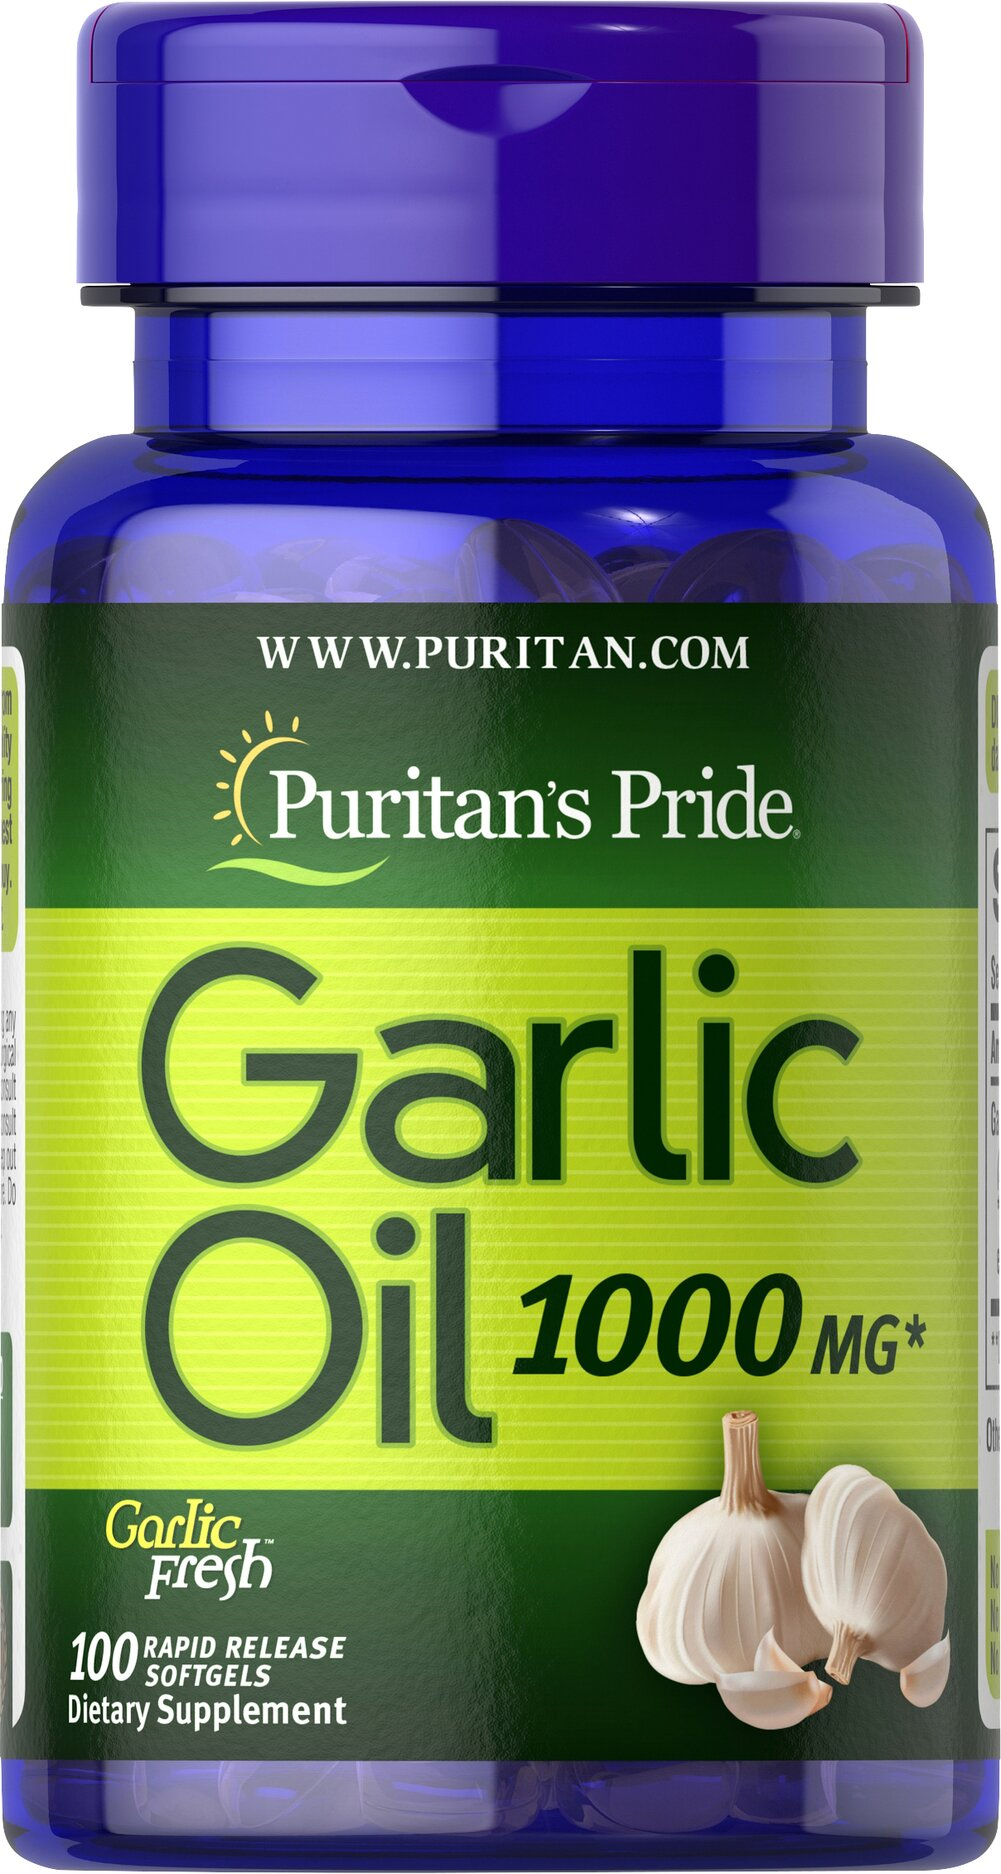 Garlic Oil 1000 mg <p>Cholesterol Support**</p><p>Supports Cardiovascular Health**</p><p>Whether warding off evil spirits or flavoring sauces, Garlic has been known for its beneficial qualities. Natural ingredients in Garlic include alliin, allinase and allicin. Garlic promotes cardiovascular health and helps to maintain cholesterol levels that are already within the normal range.**</p> 100 Softgels 1000 mg $7.99